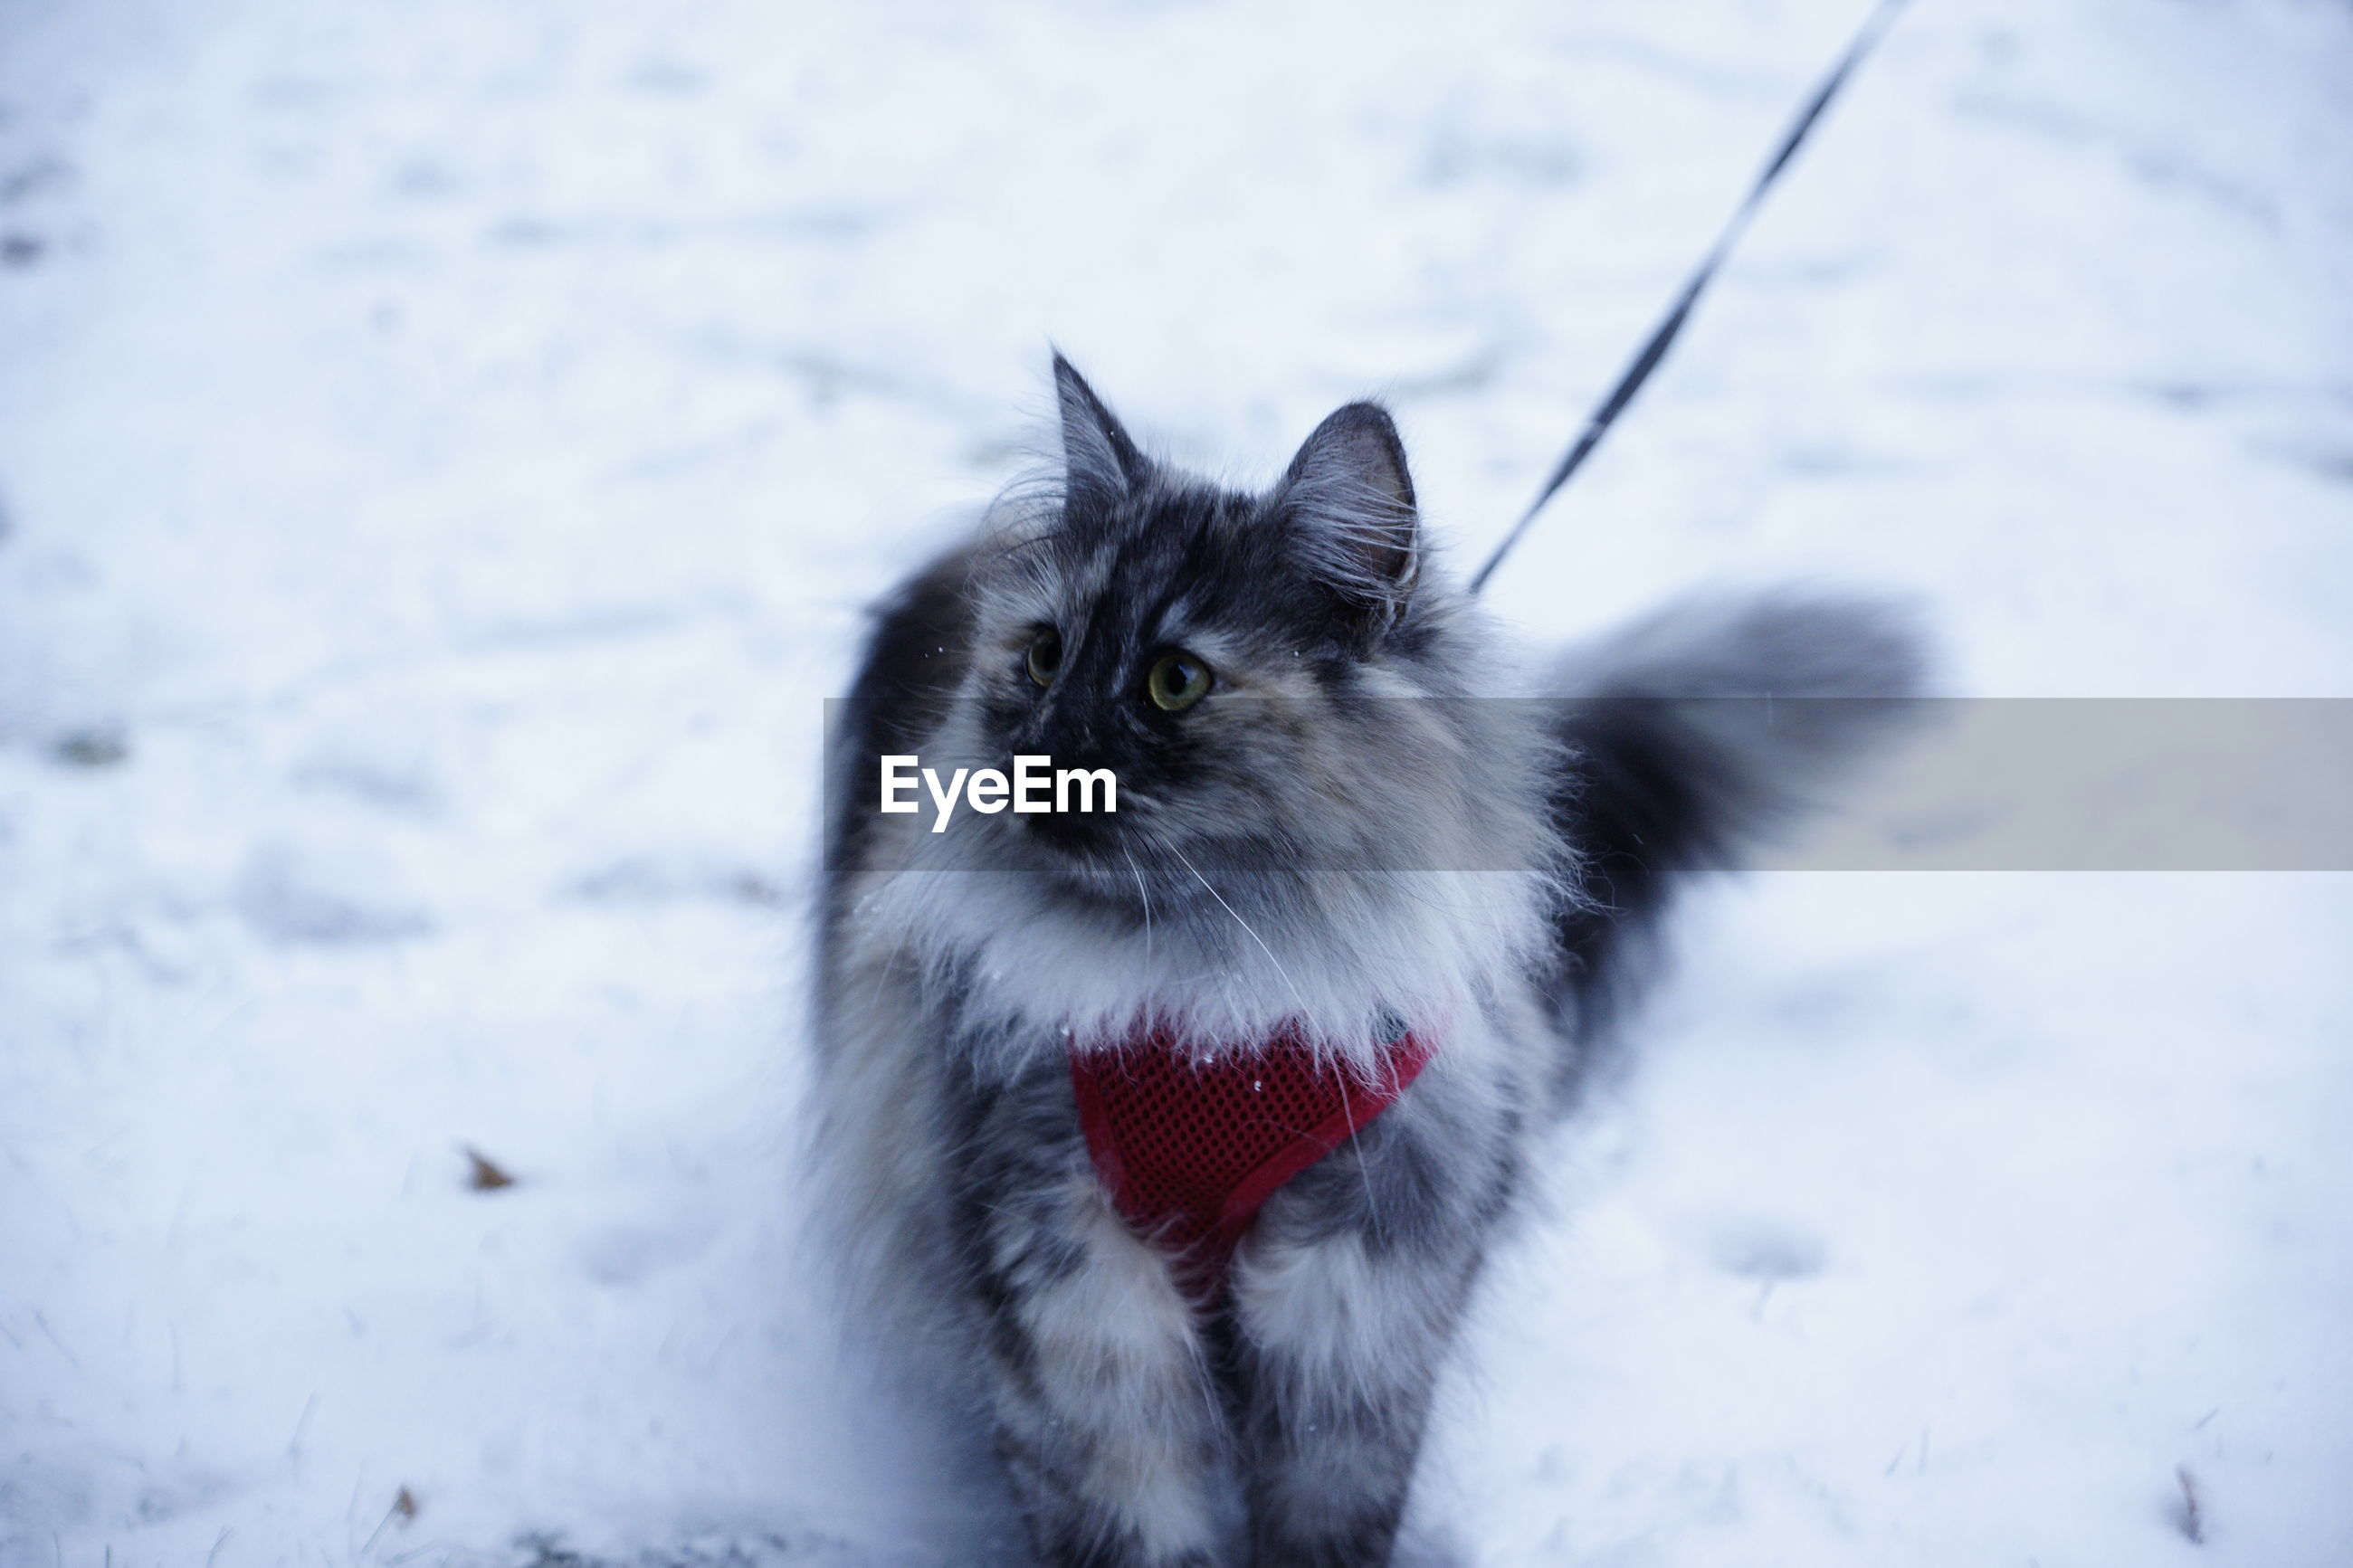 CAT LOOKING AT SNOW FIELD